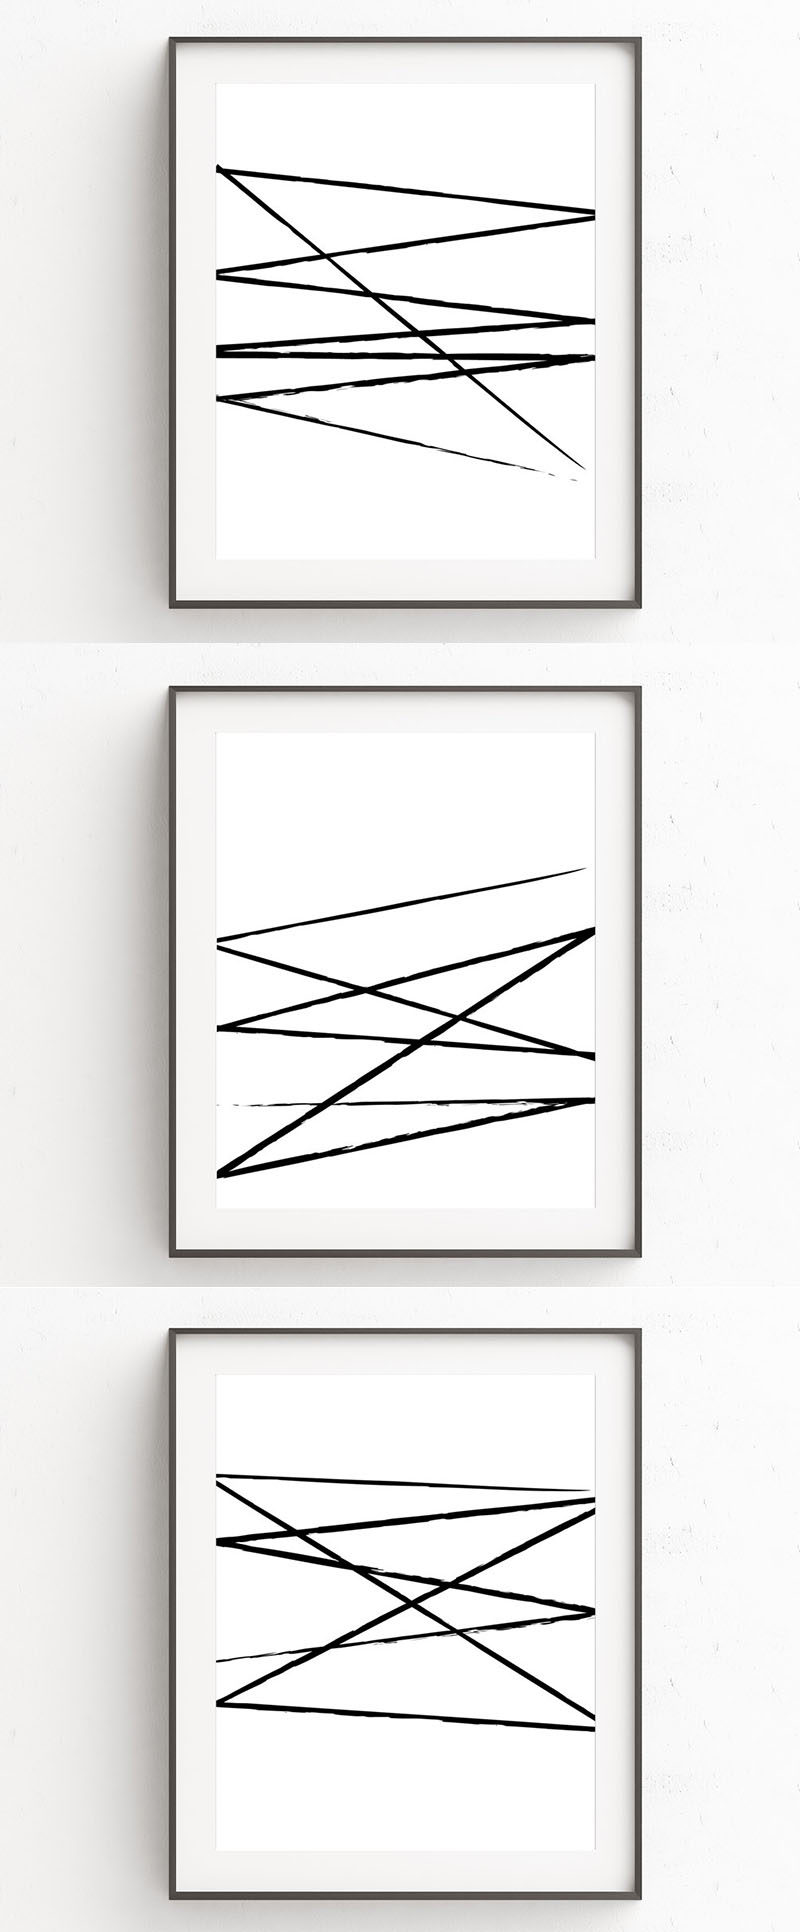 Oju Design has created a series of modern black and white wall art prints that have fierce and imperfect brush strokes slashed across a white background.